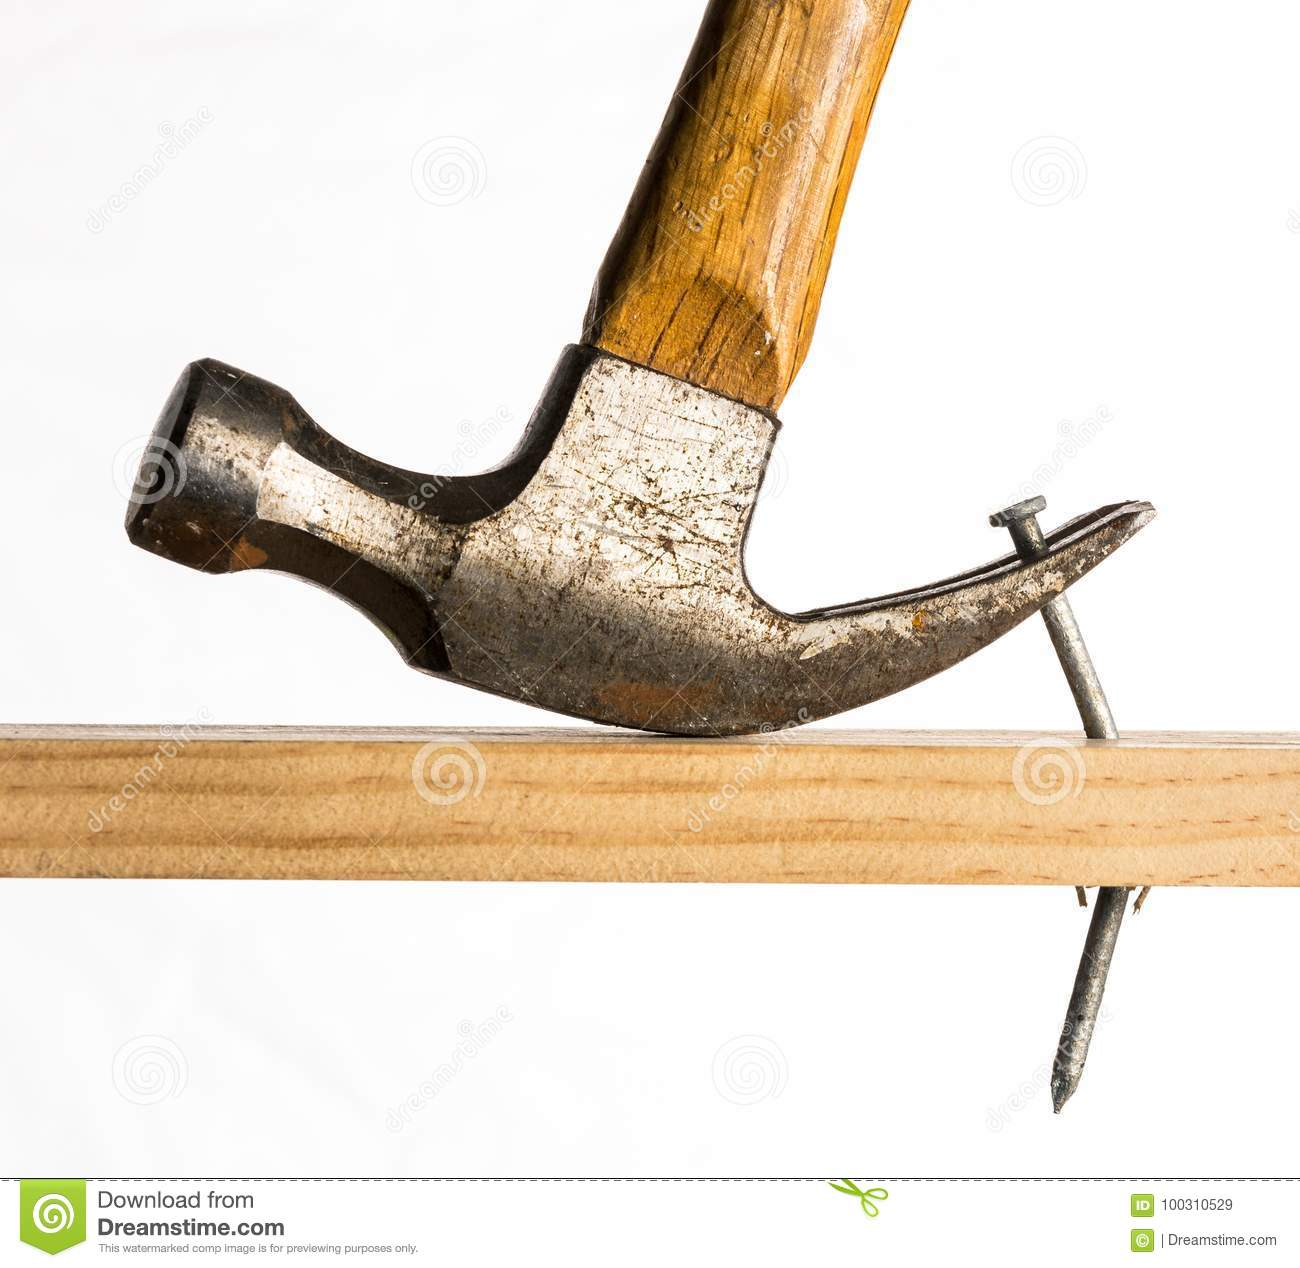 A Claw Hammer Removing A Nail Stock Image Image Of Board Hammer